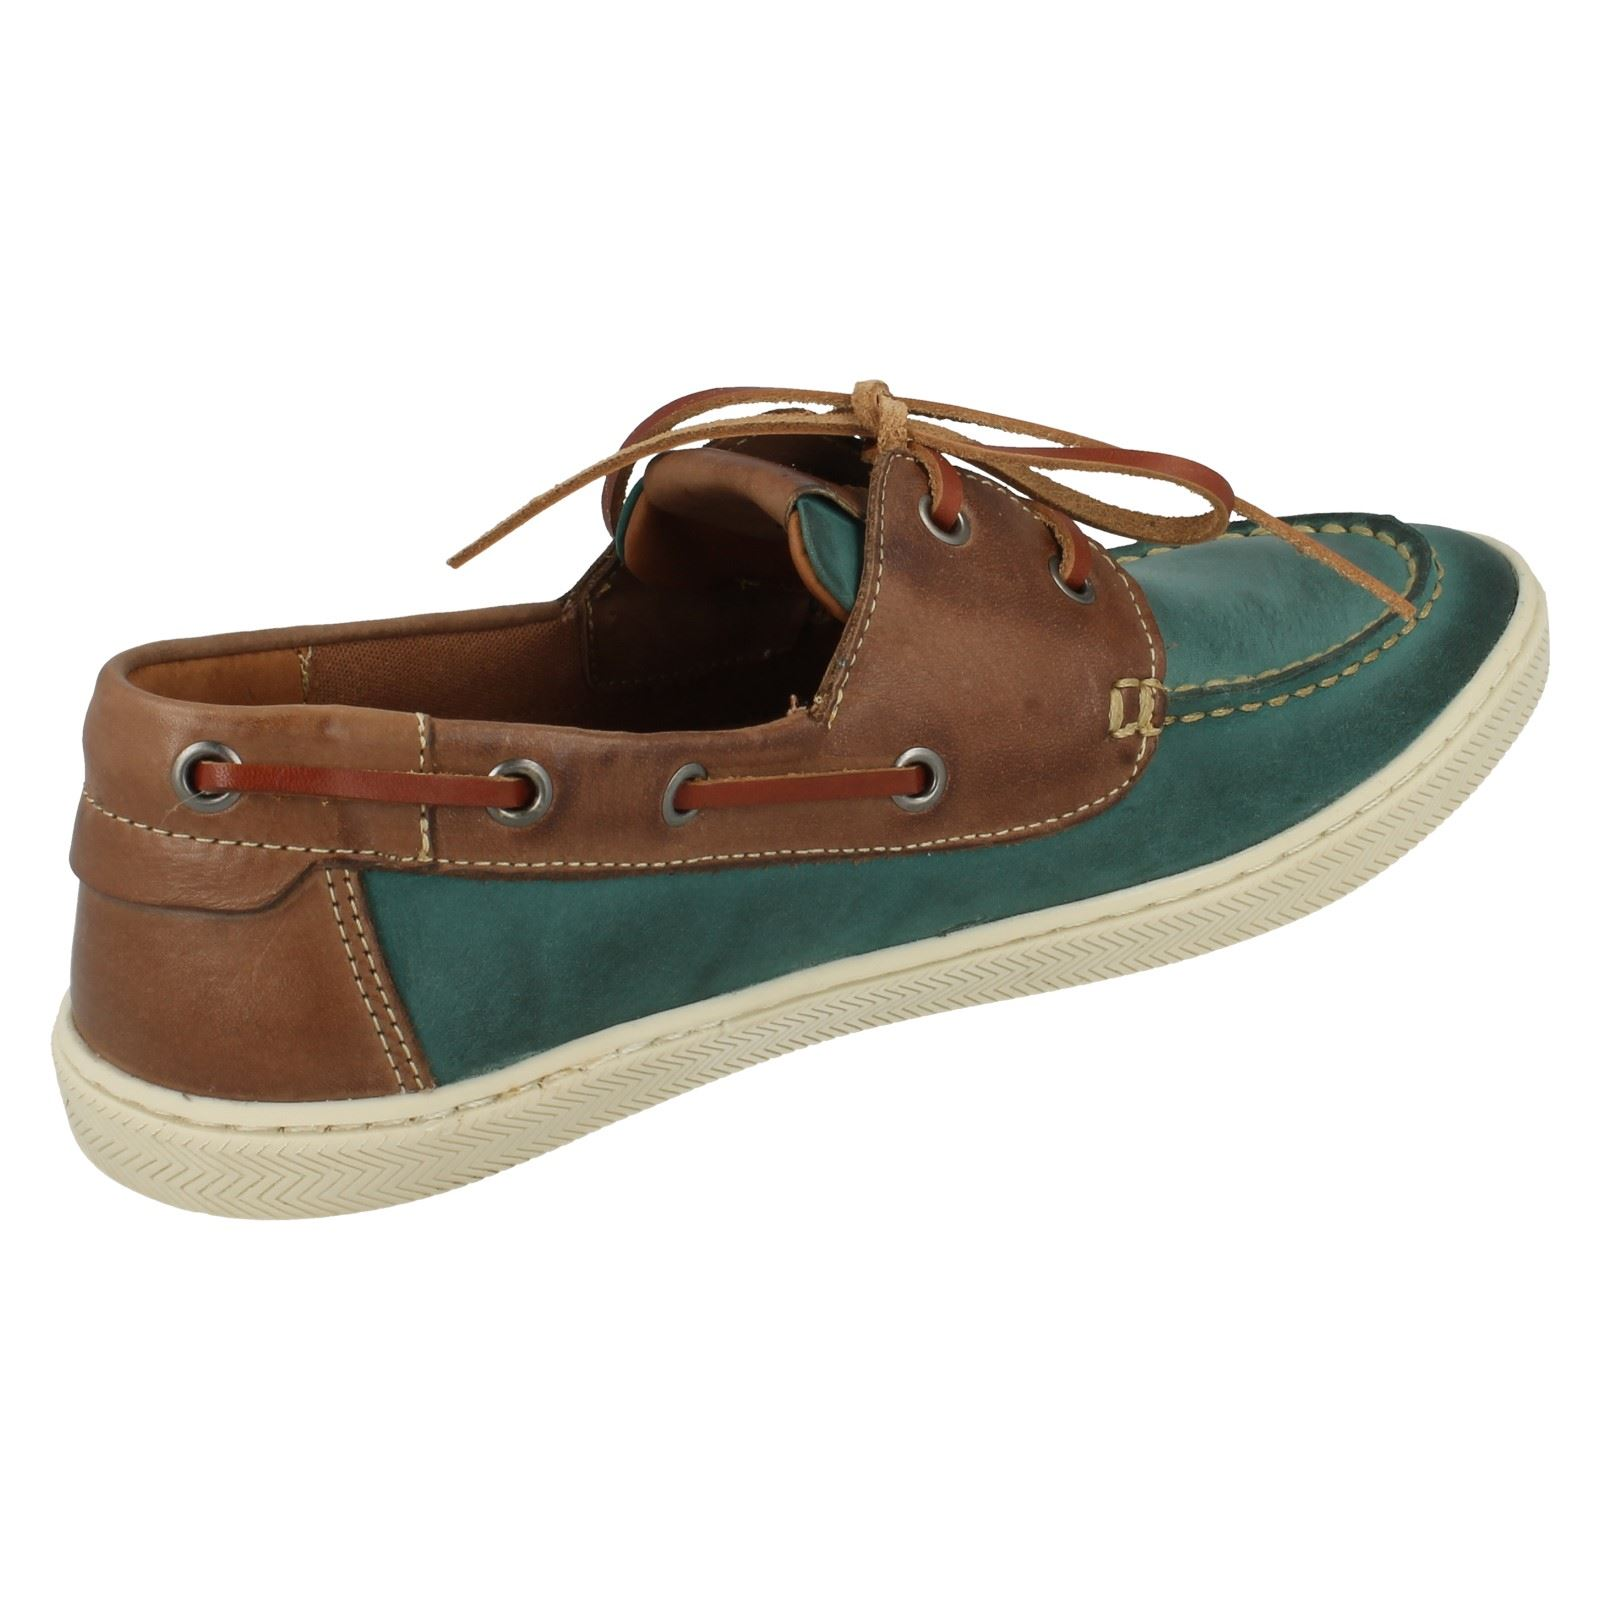 Gentlemen/Ladies Mens Anatomic Boat Shoes Style Lorena service Sufficient supply Diversified Diversified supply new design ccf630